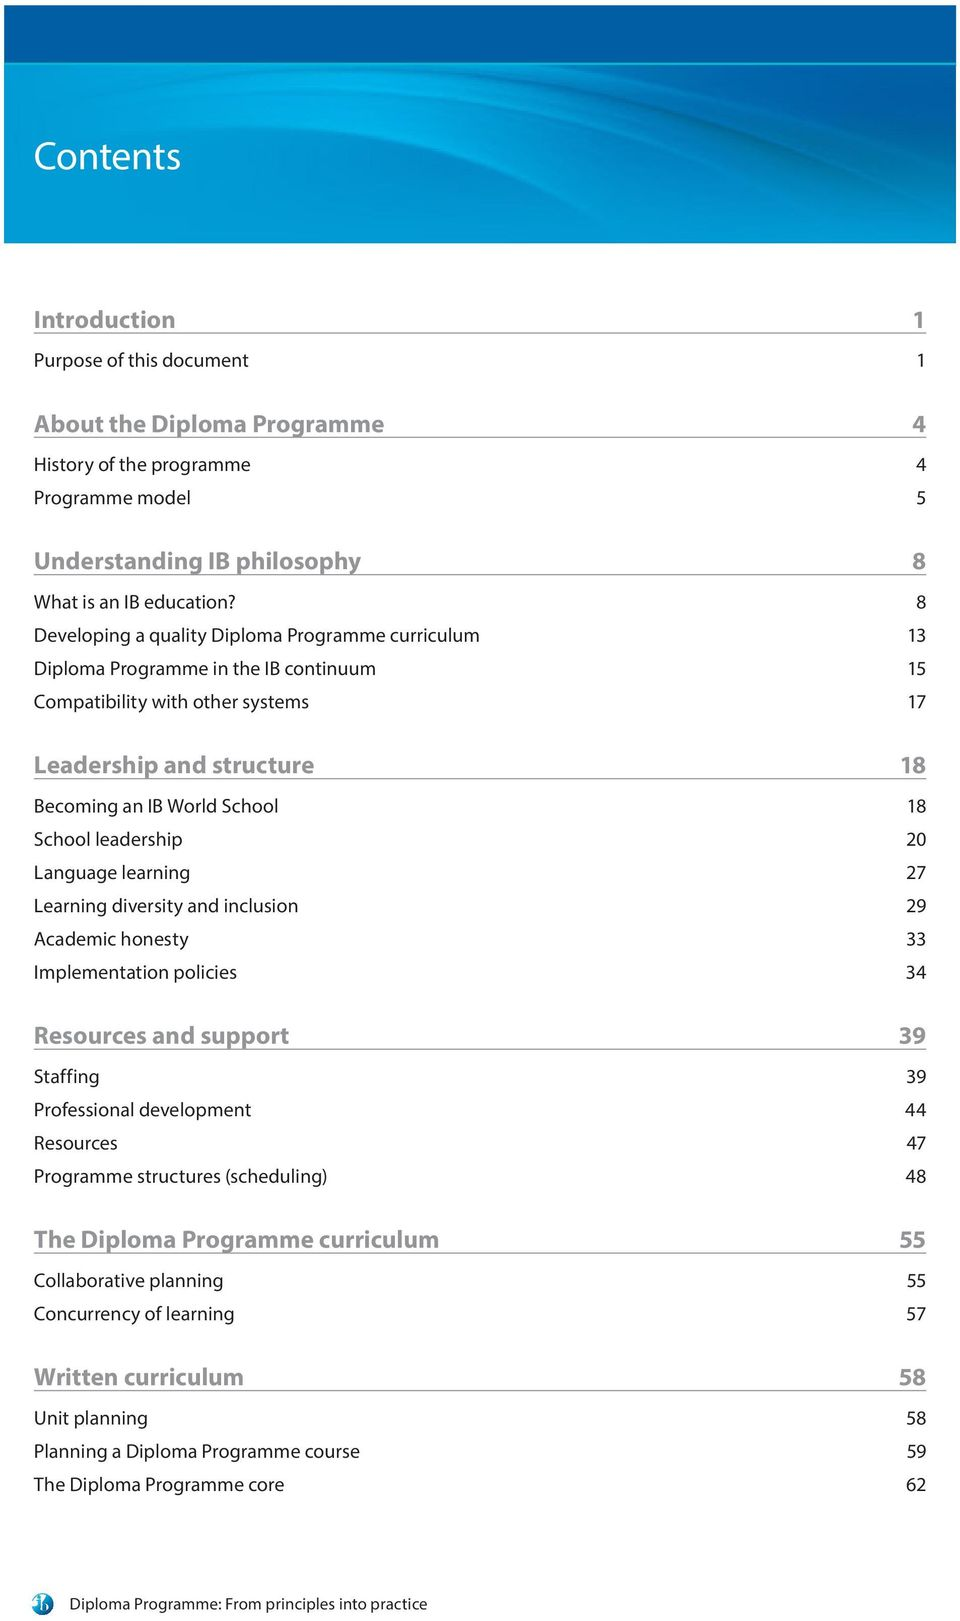 leadership 20 Language learning 27 Learning diversity and inclusion 29 Academic honesty 33 Implementation policies 34 Resources and support 39 Staffing 39 Professional development 44 Resources 47